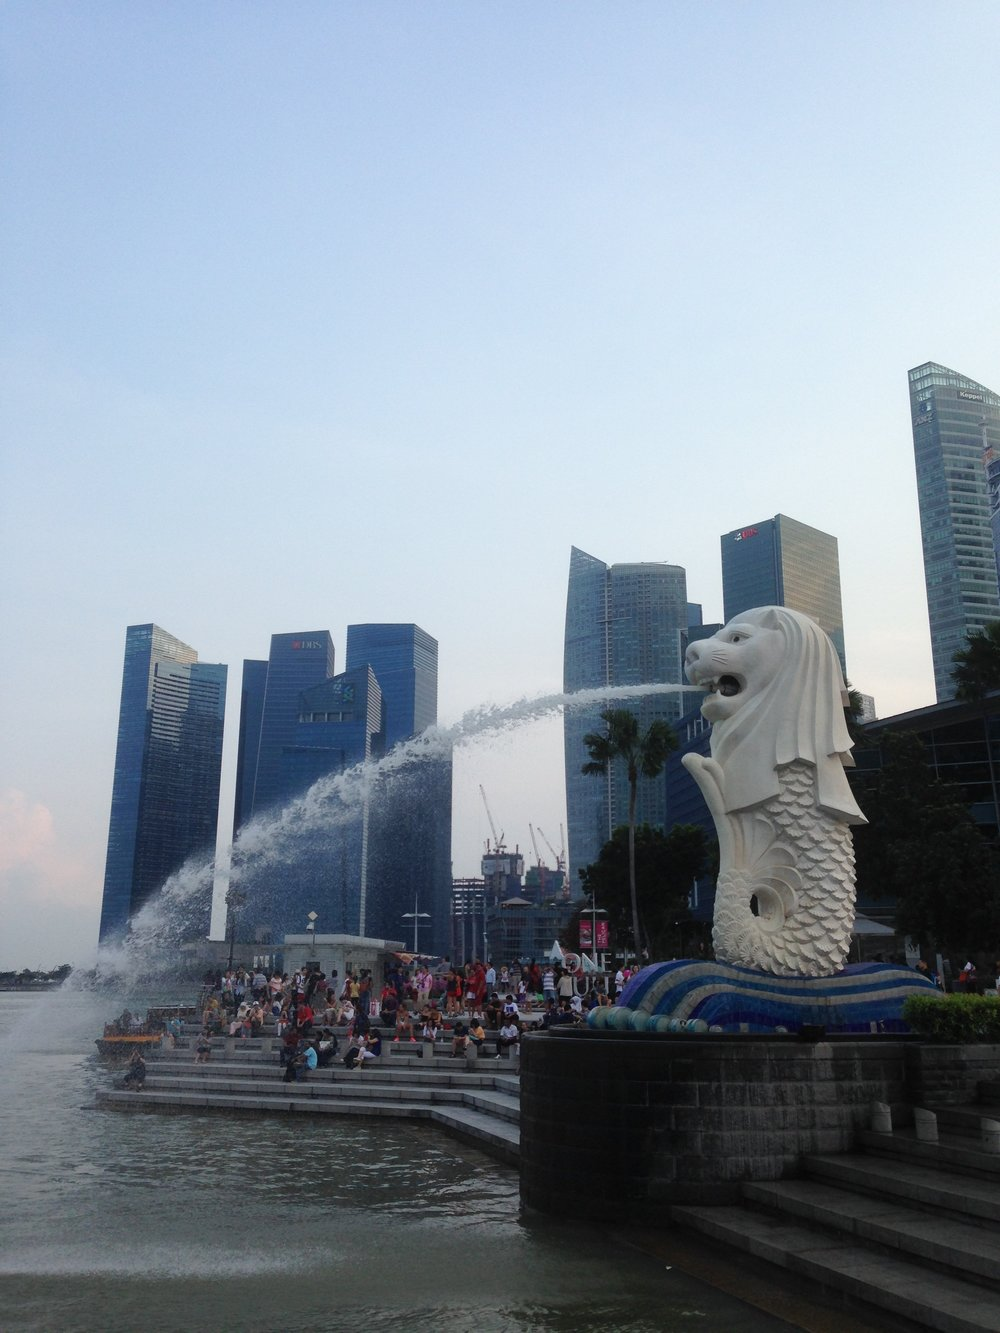 "The symbol of Singapore. The fish part represents Singapore's origins as a fishing village while the lion head is a nod to Singapore's original name, Singapura, meaning ""Lion City"" in Malay."